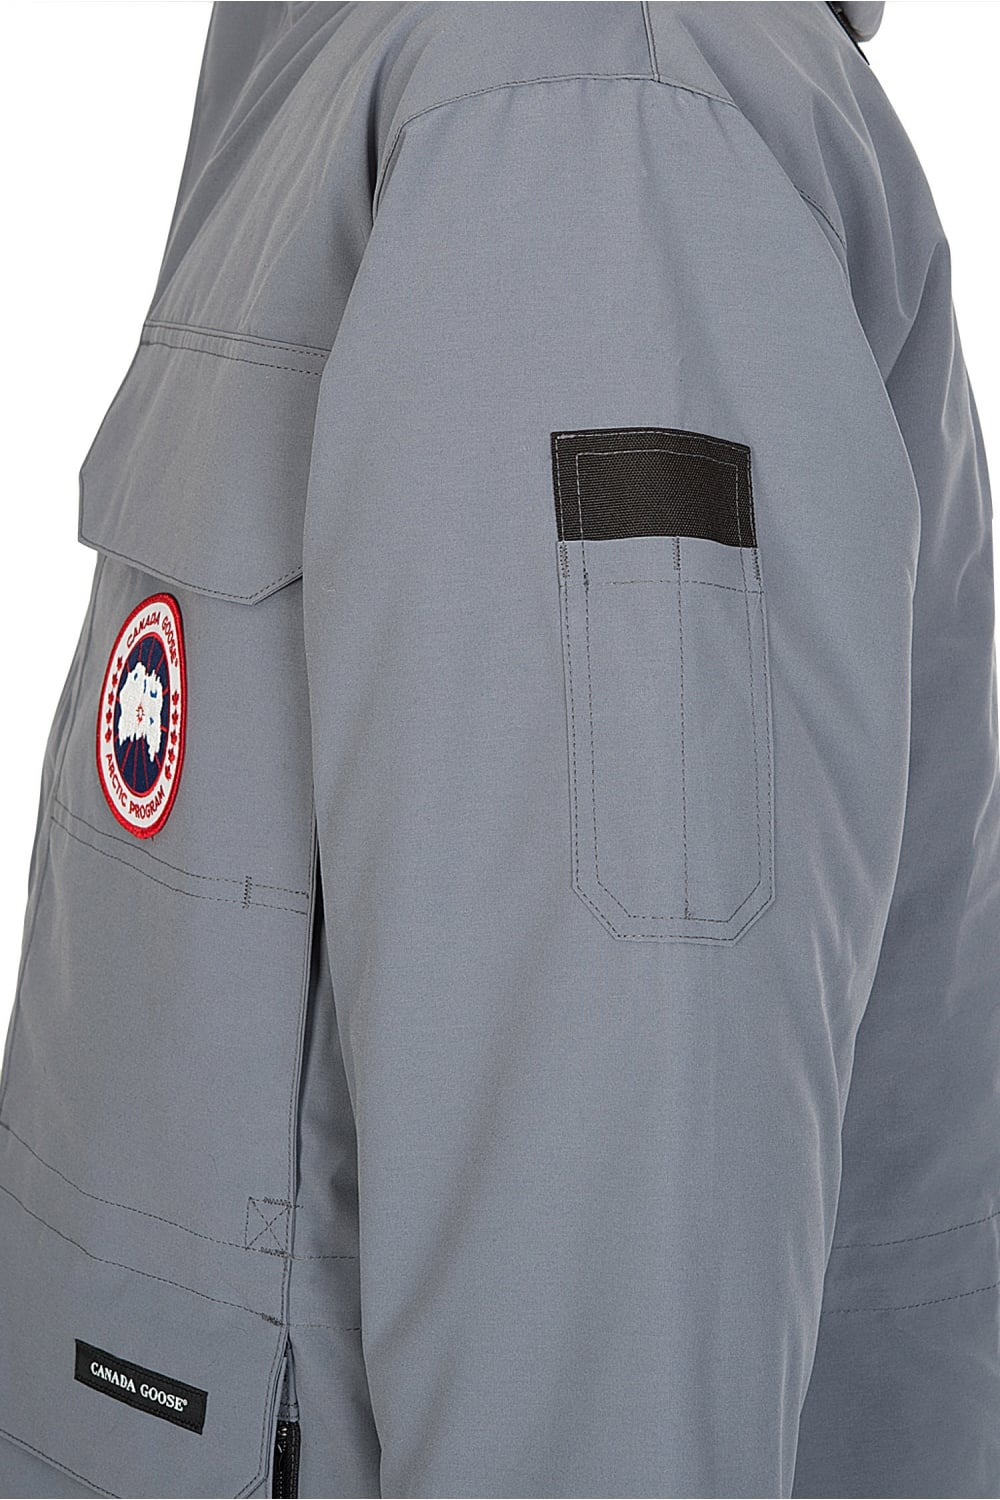 Canada Goose Mens Expedition Parka Canada Goose From